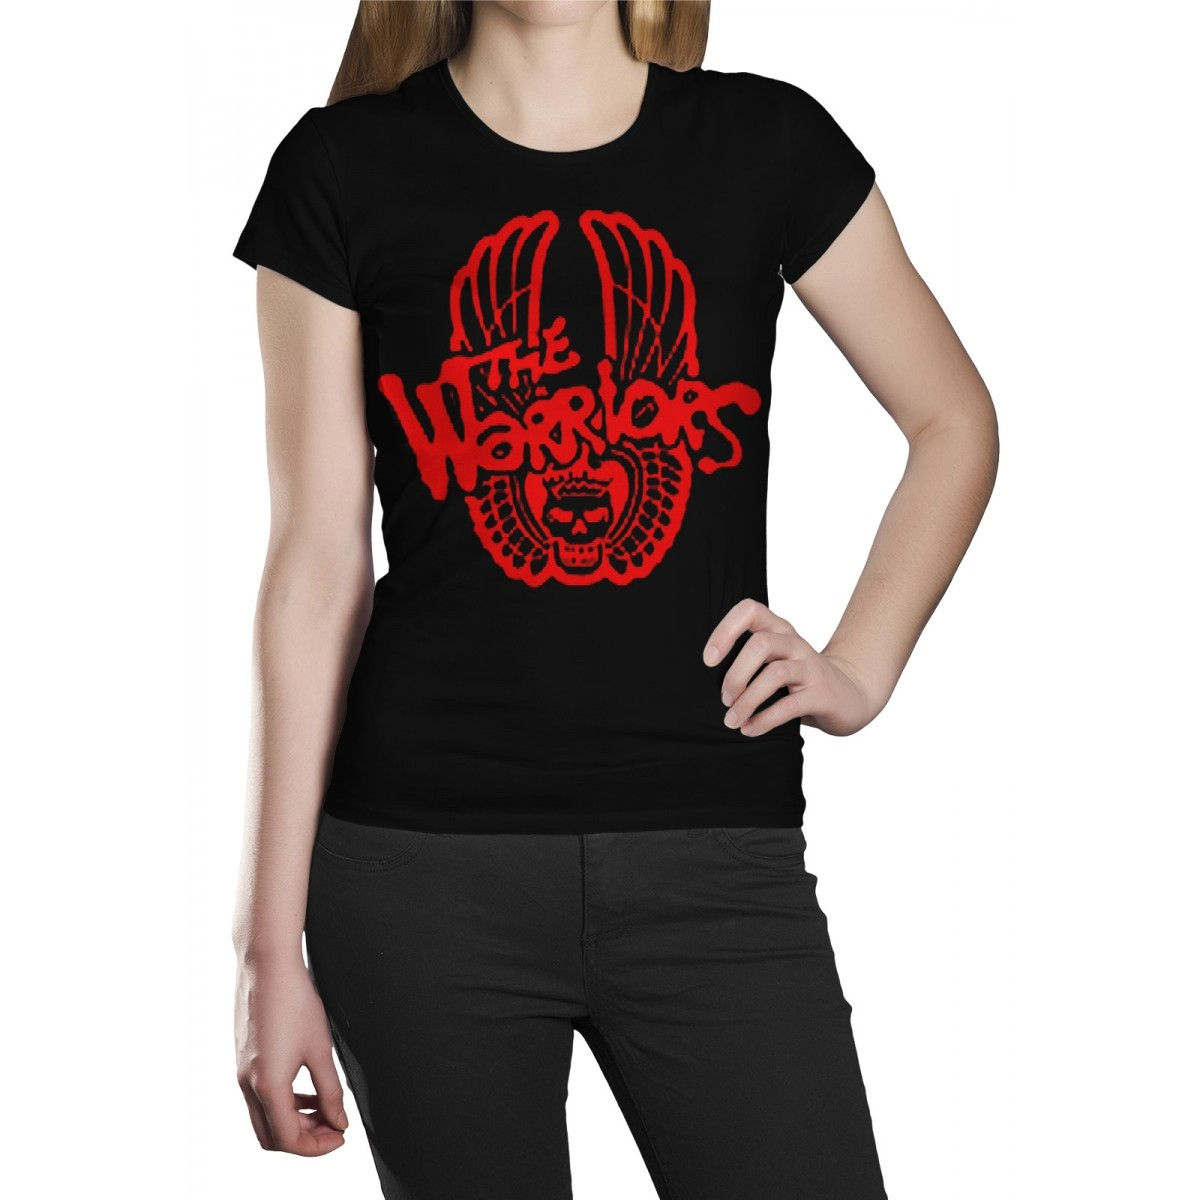 Camiseta HShop The Warriors Preto - 433  - HShop